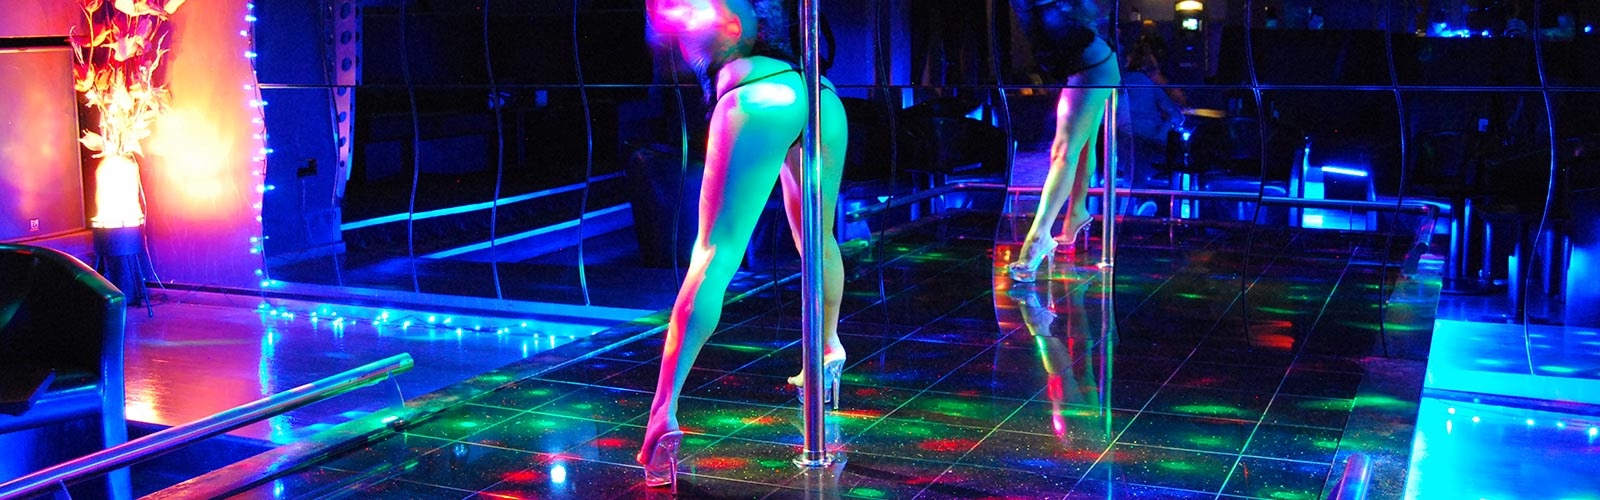 Top 10 Gay Bars in Royal Leamington